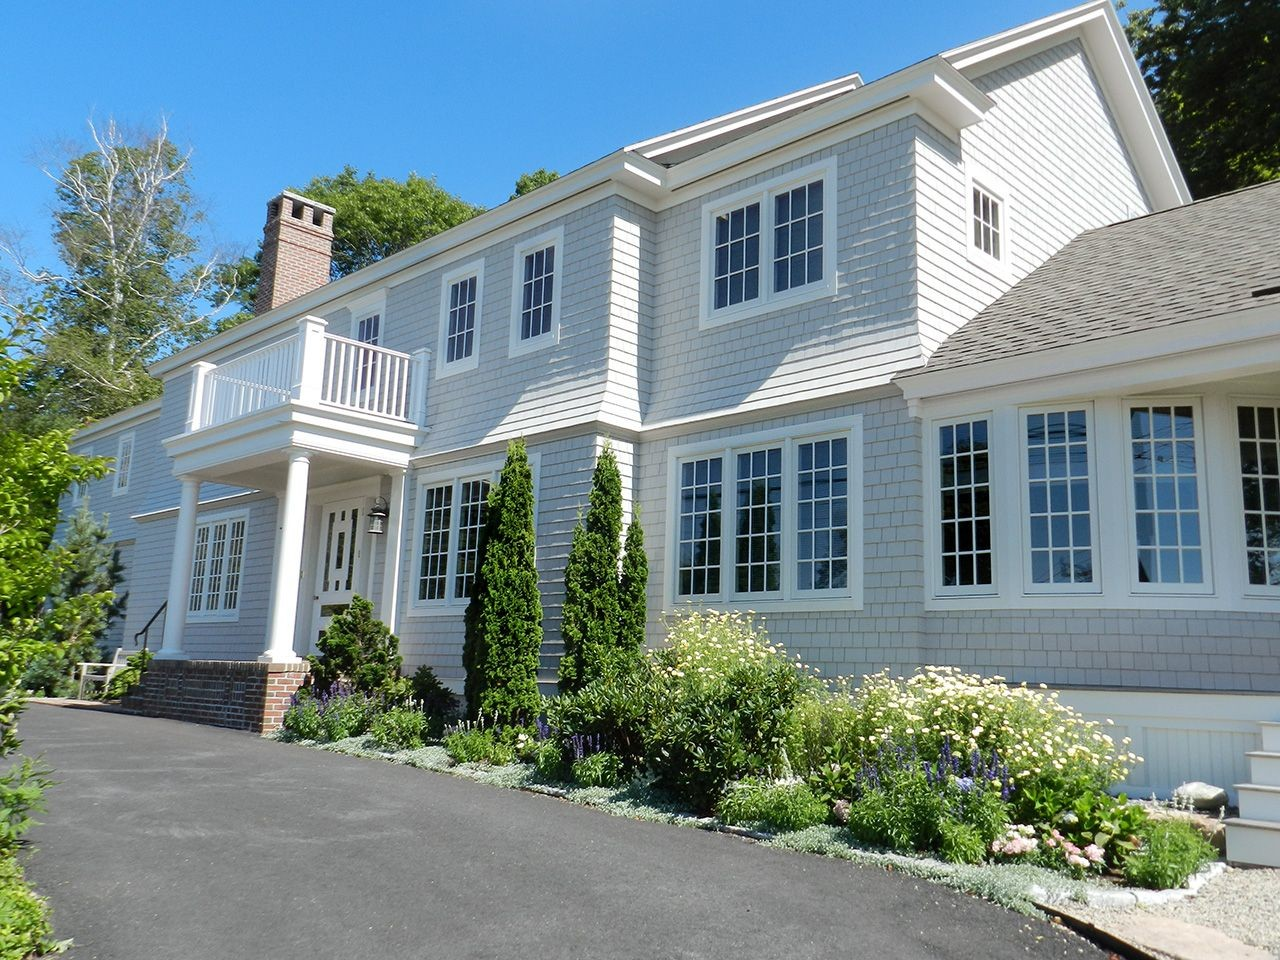 mainesail a luxury single family home for sale in mount desert, maine property id 379300712 christie s international real estate